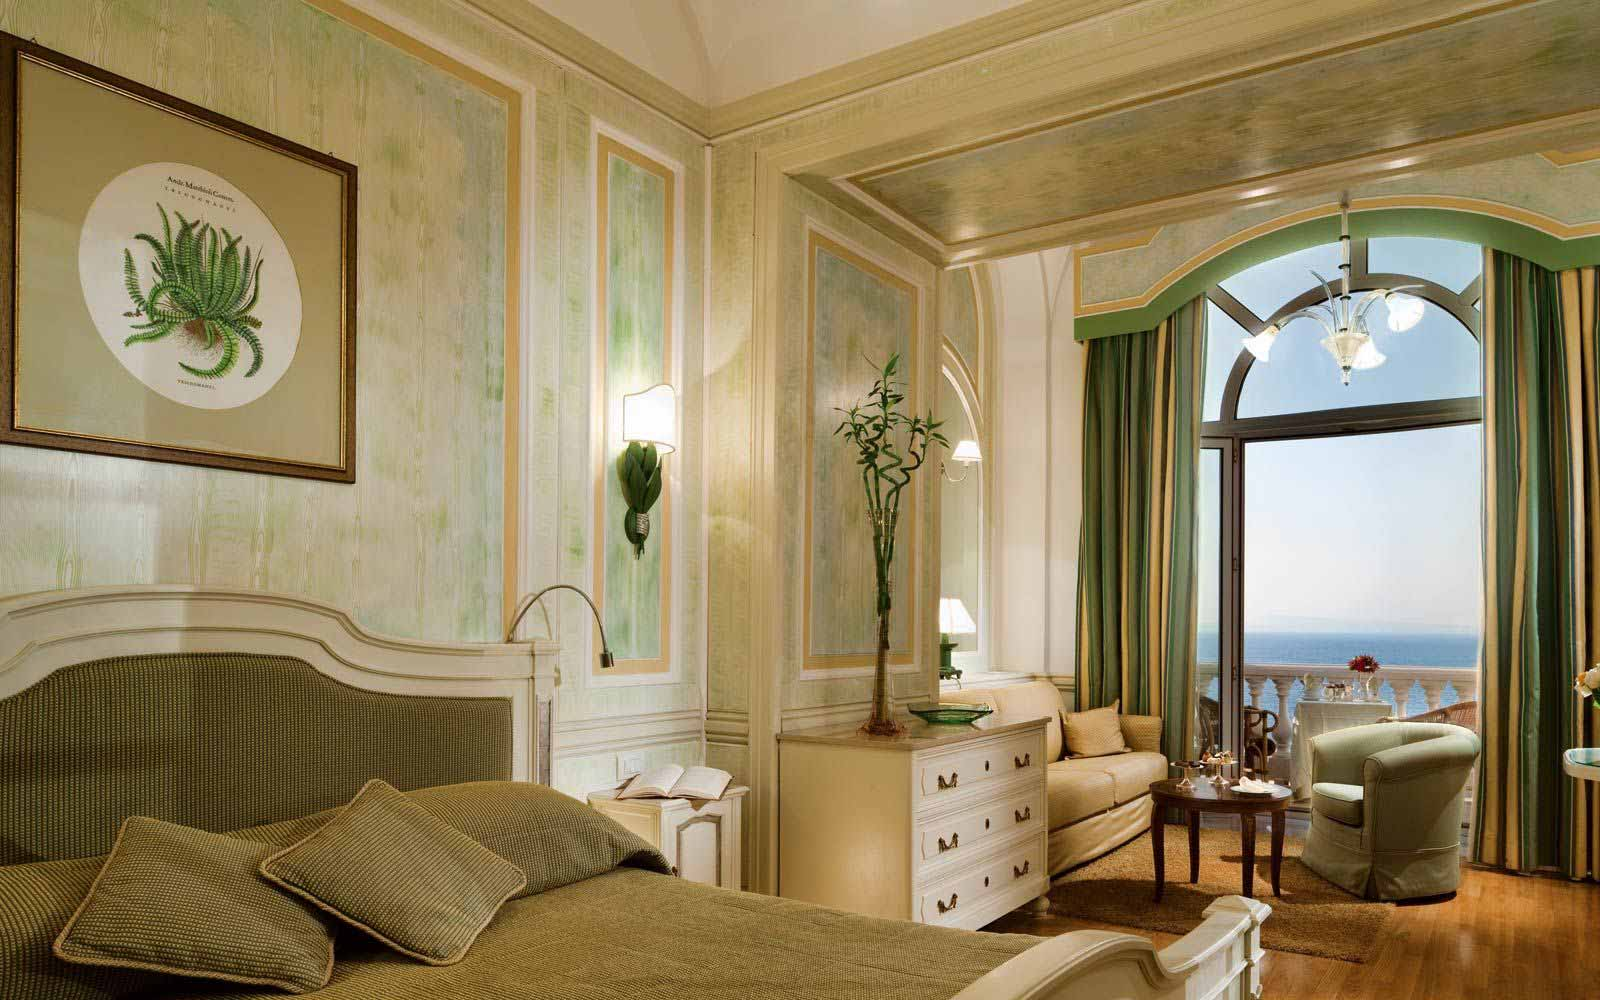 Deluxe Room at the Grand Hotel Excelsior Vittoria